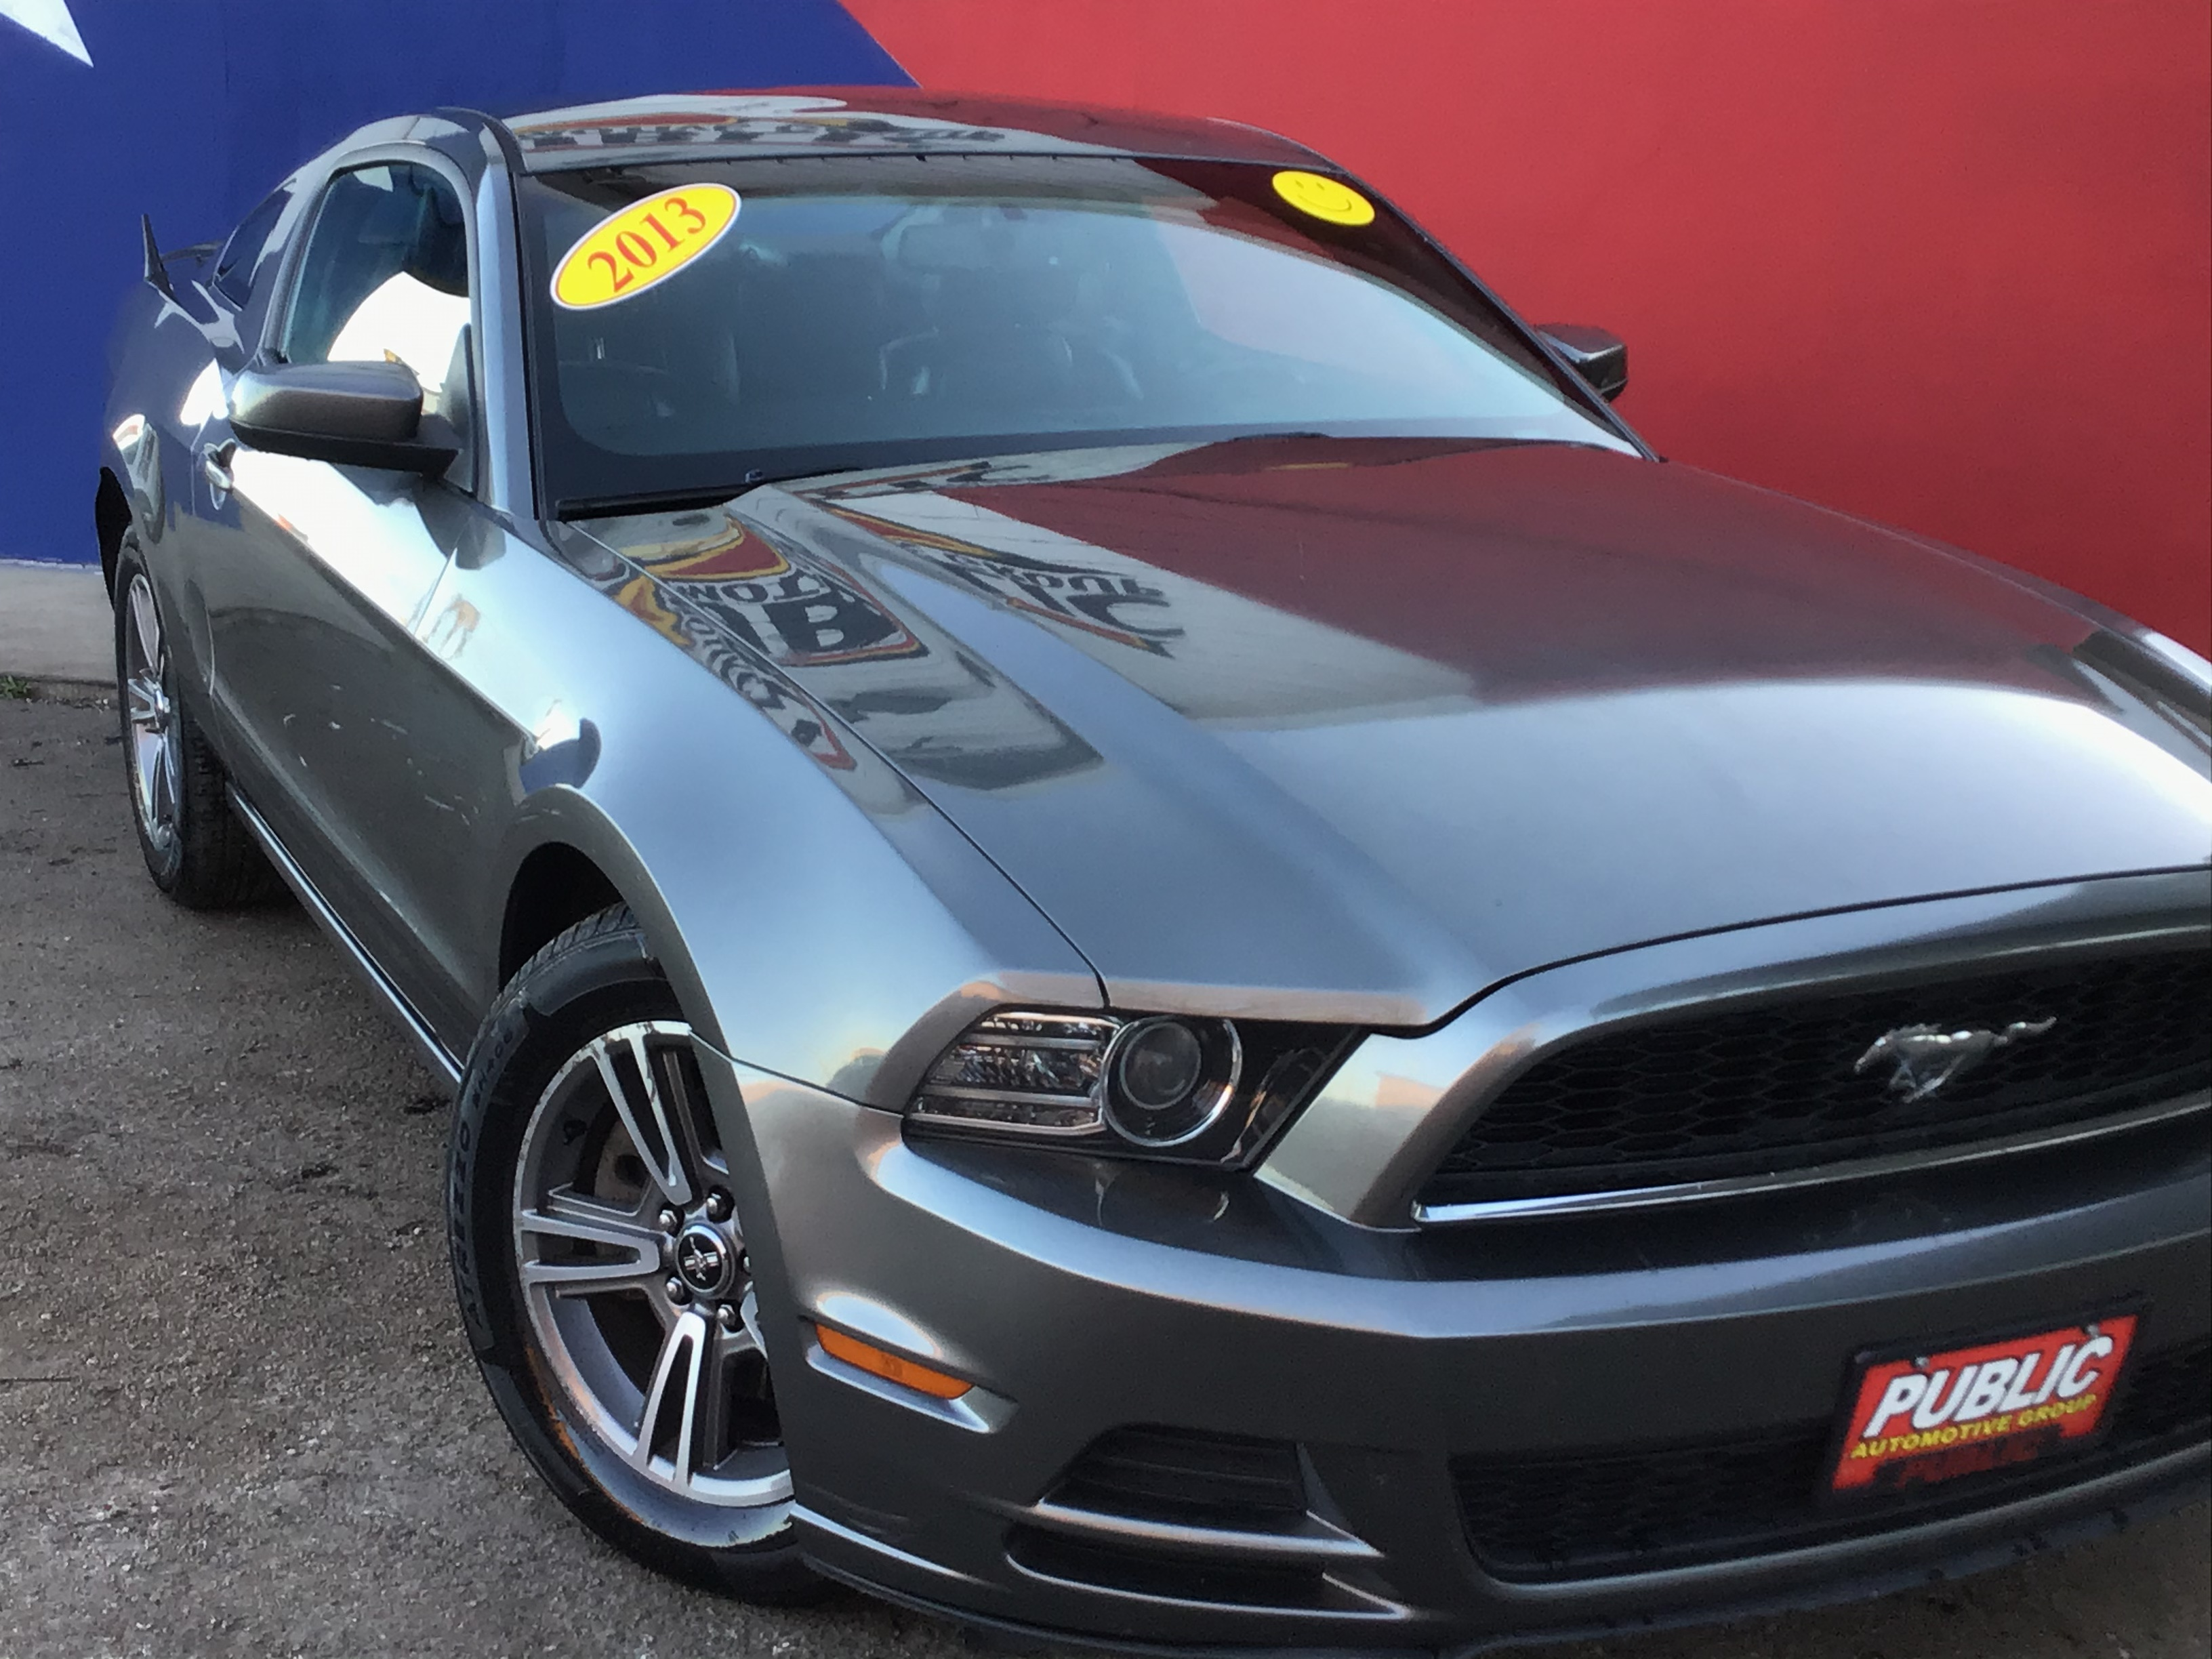 used vehicle - 2-Door Coupe 3.7-Liter 6- FORD MUSTANG 2013